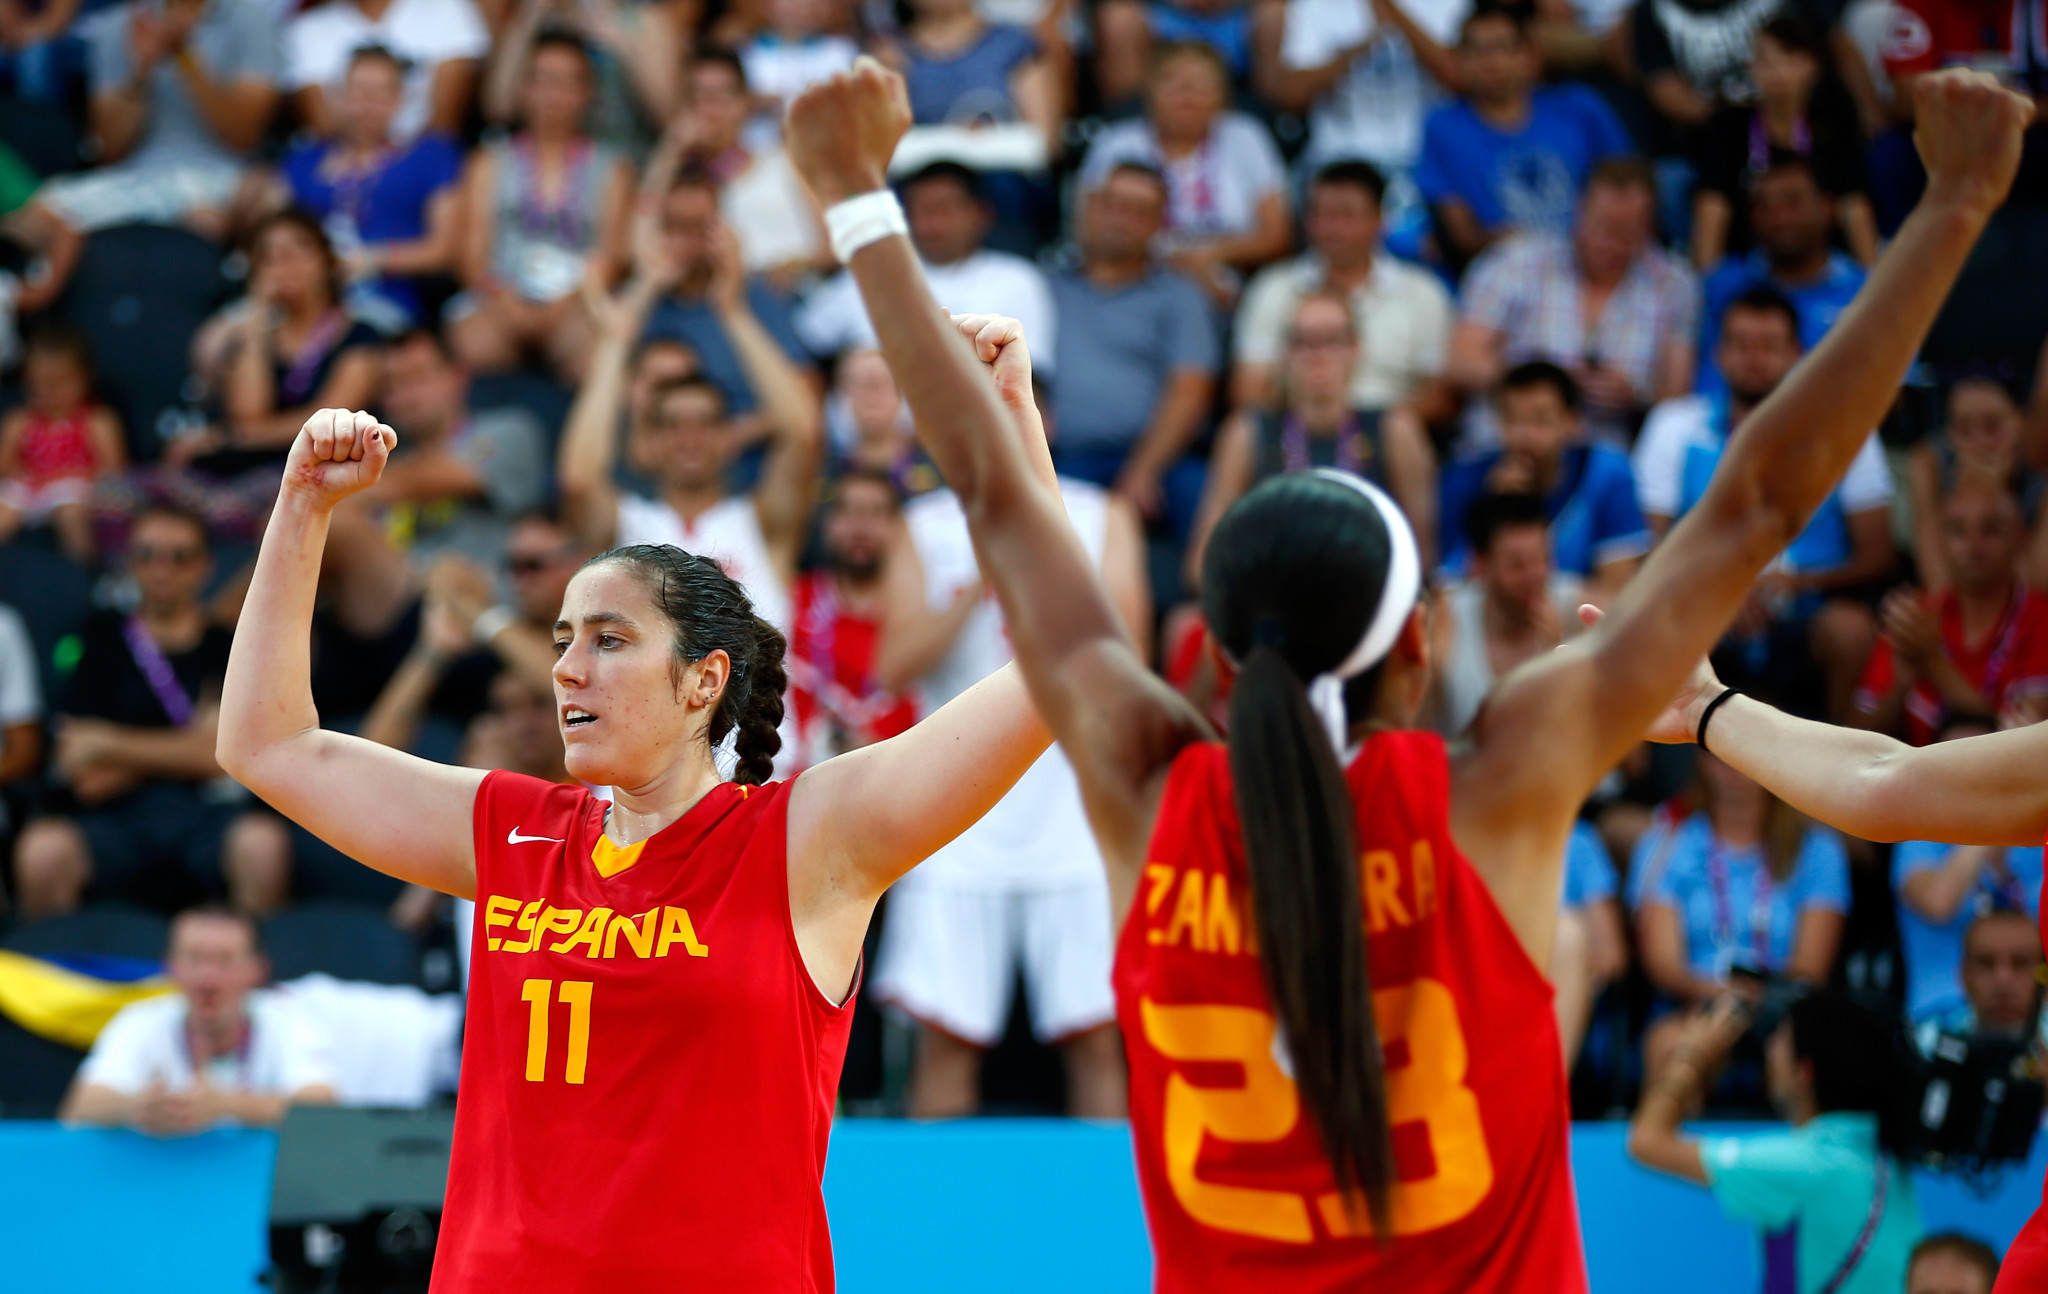 3x3 Women's Series to return with first event held at FIBA headquarters